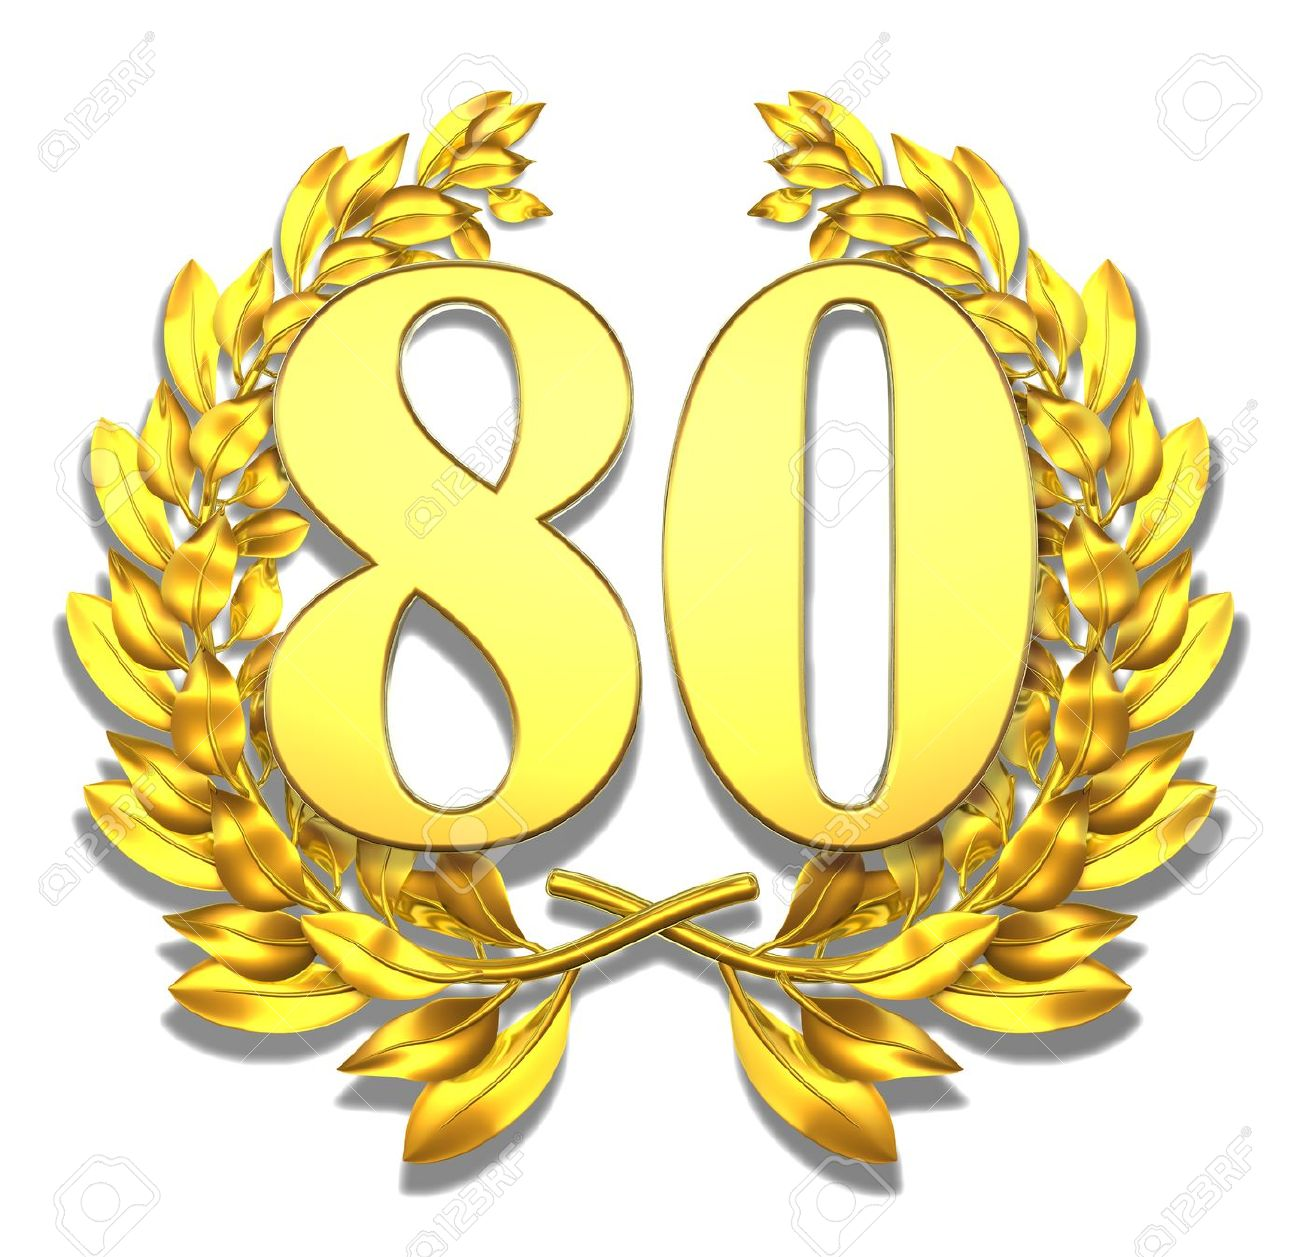 Clip art geburtstag 80 graphic transparent library Number Eighty Golden Laurel Wreath With The Number Eighty Inside ... graphic transparent library